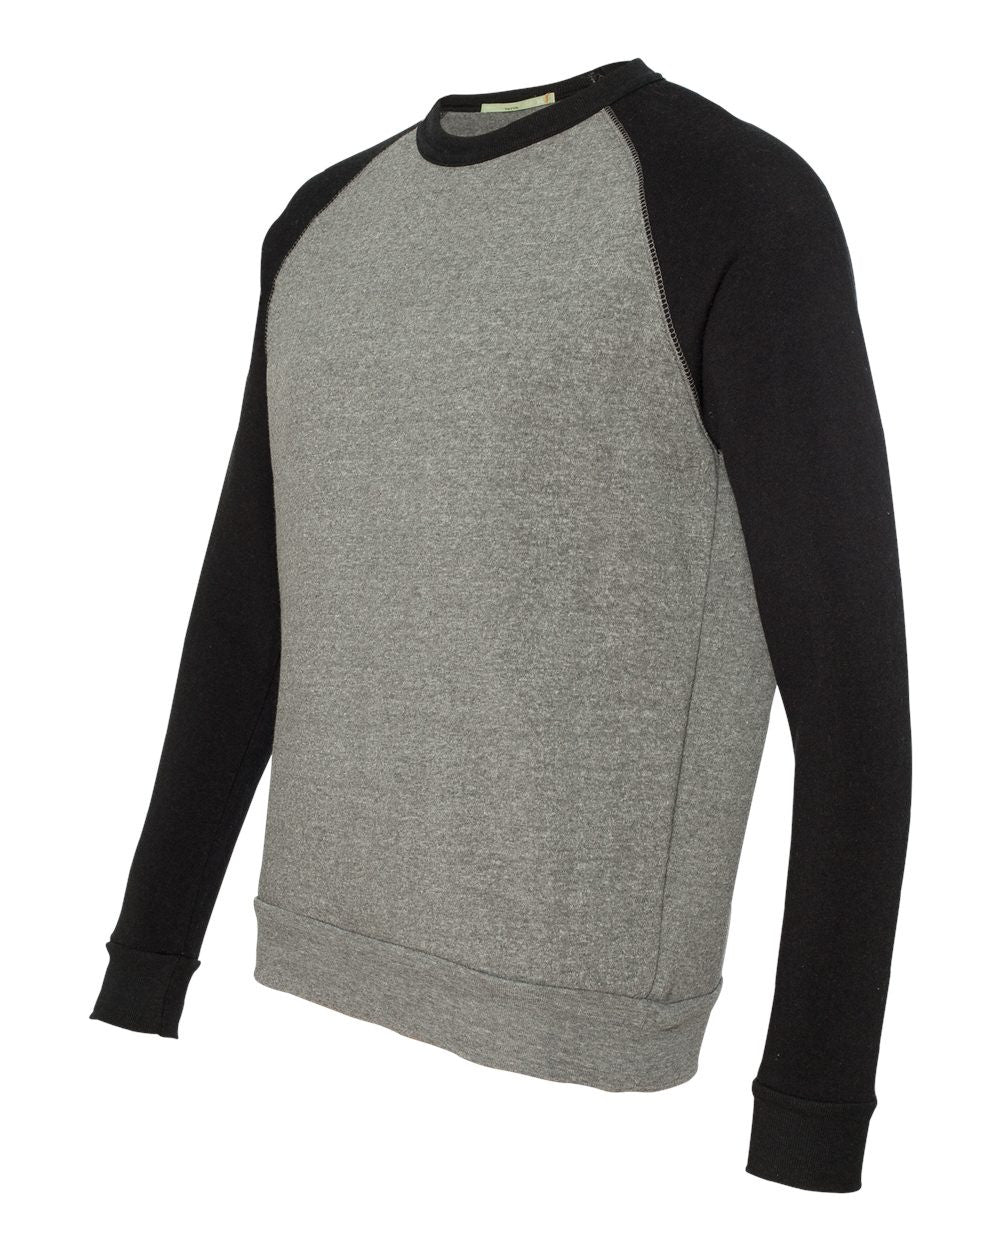 Colorblocked Crewneck Sweatshirt by Alternative